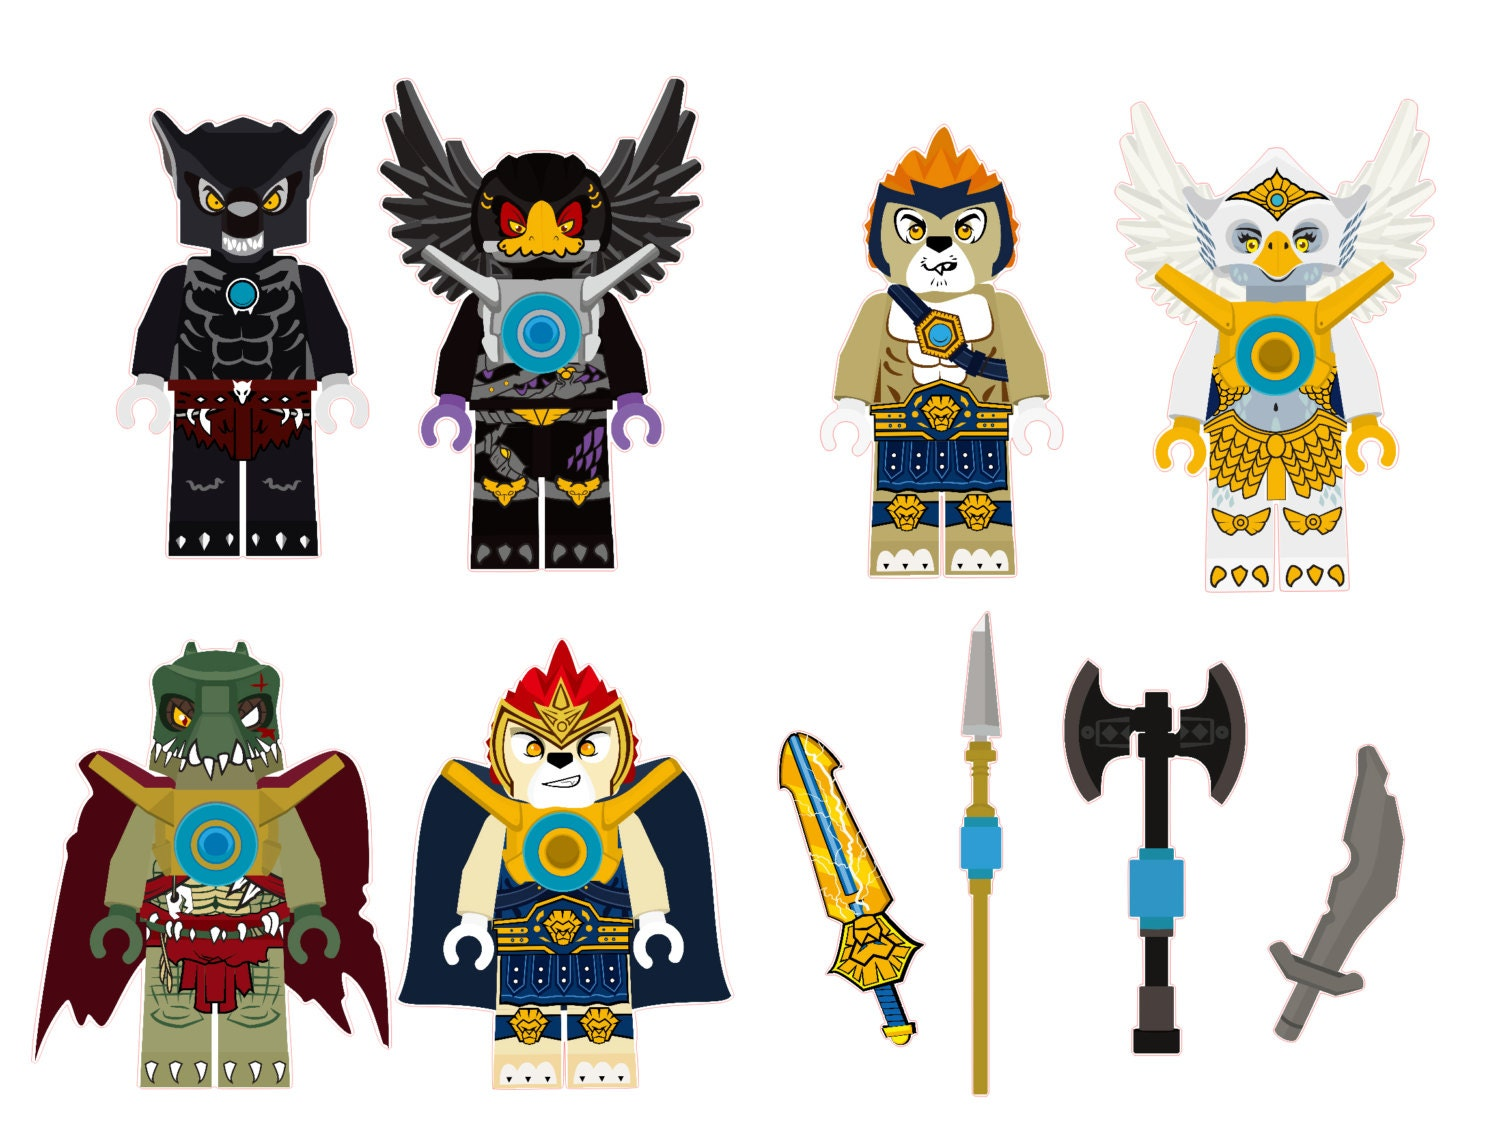 the lego chima characters removable wall stickers 6 piece set